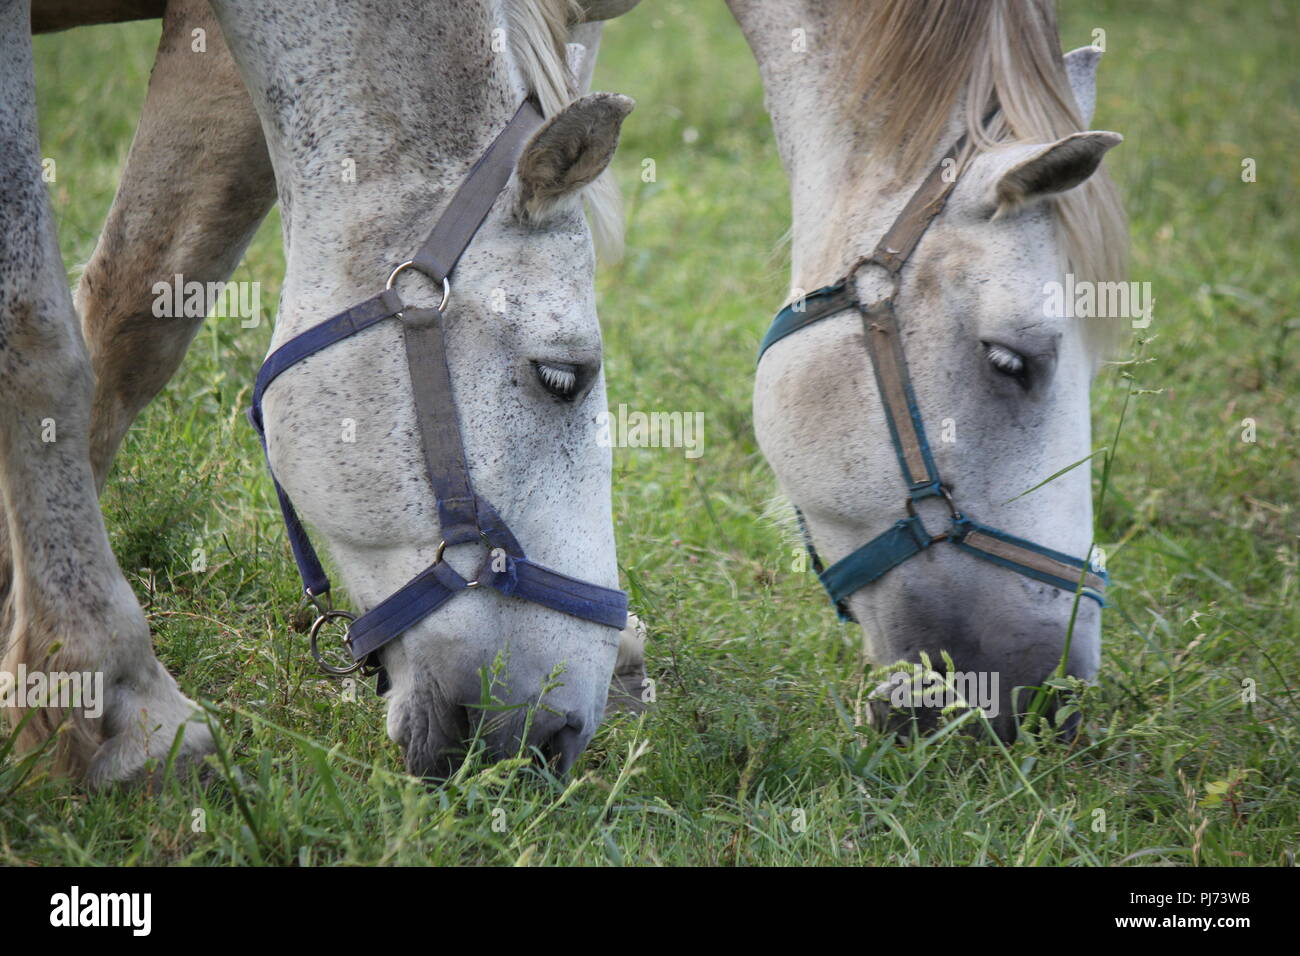 Percheron draft horse at Wagner Farm in suburban Glenview, Illinois on a summer day. - Stock Image